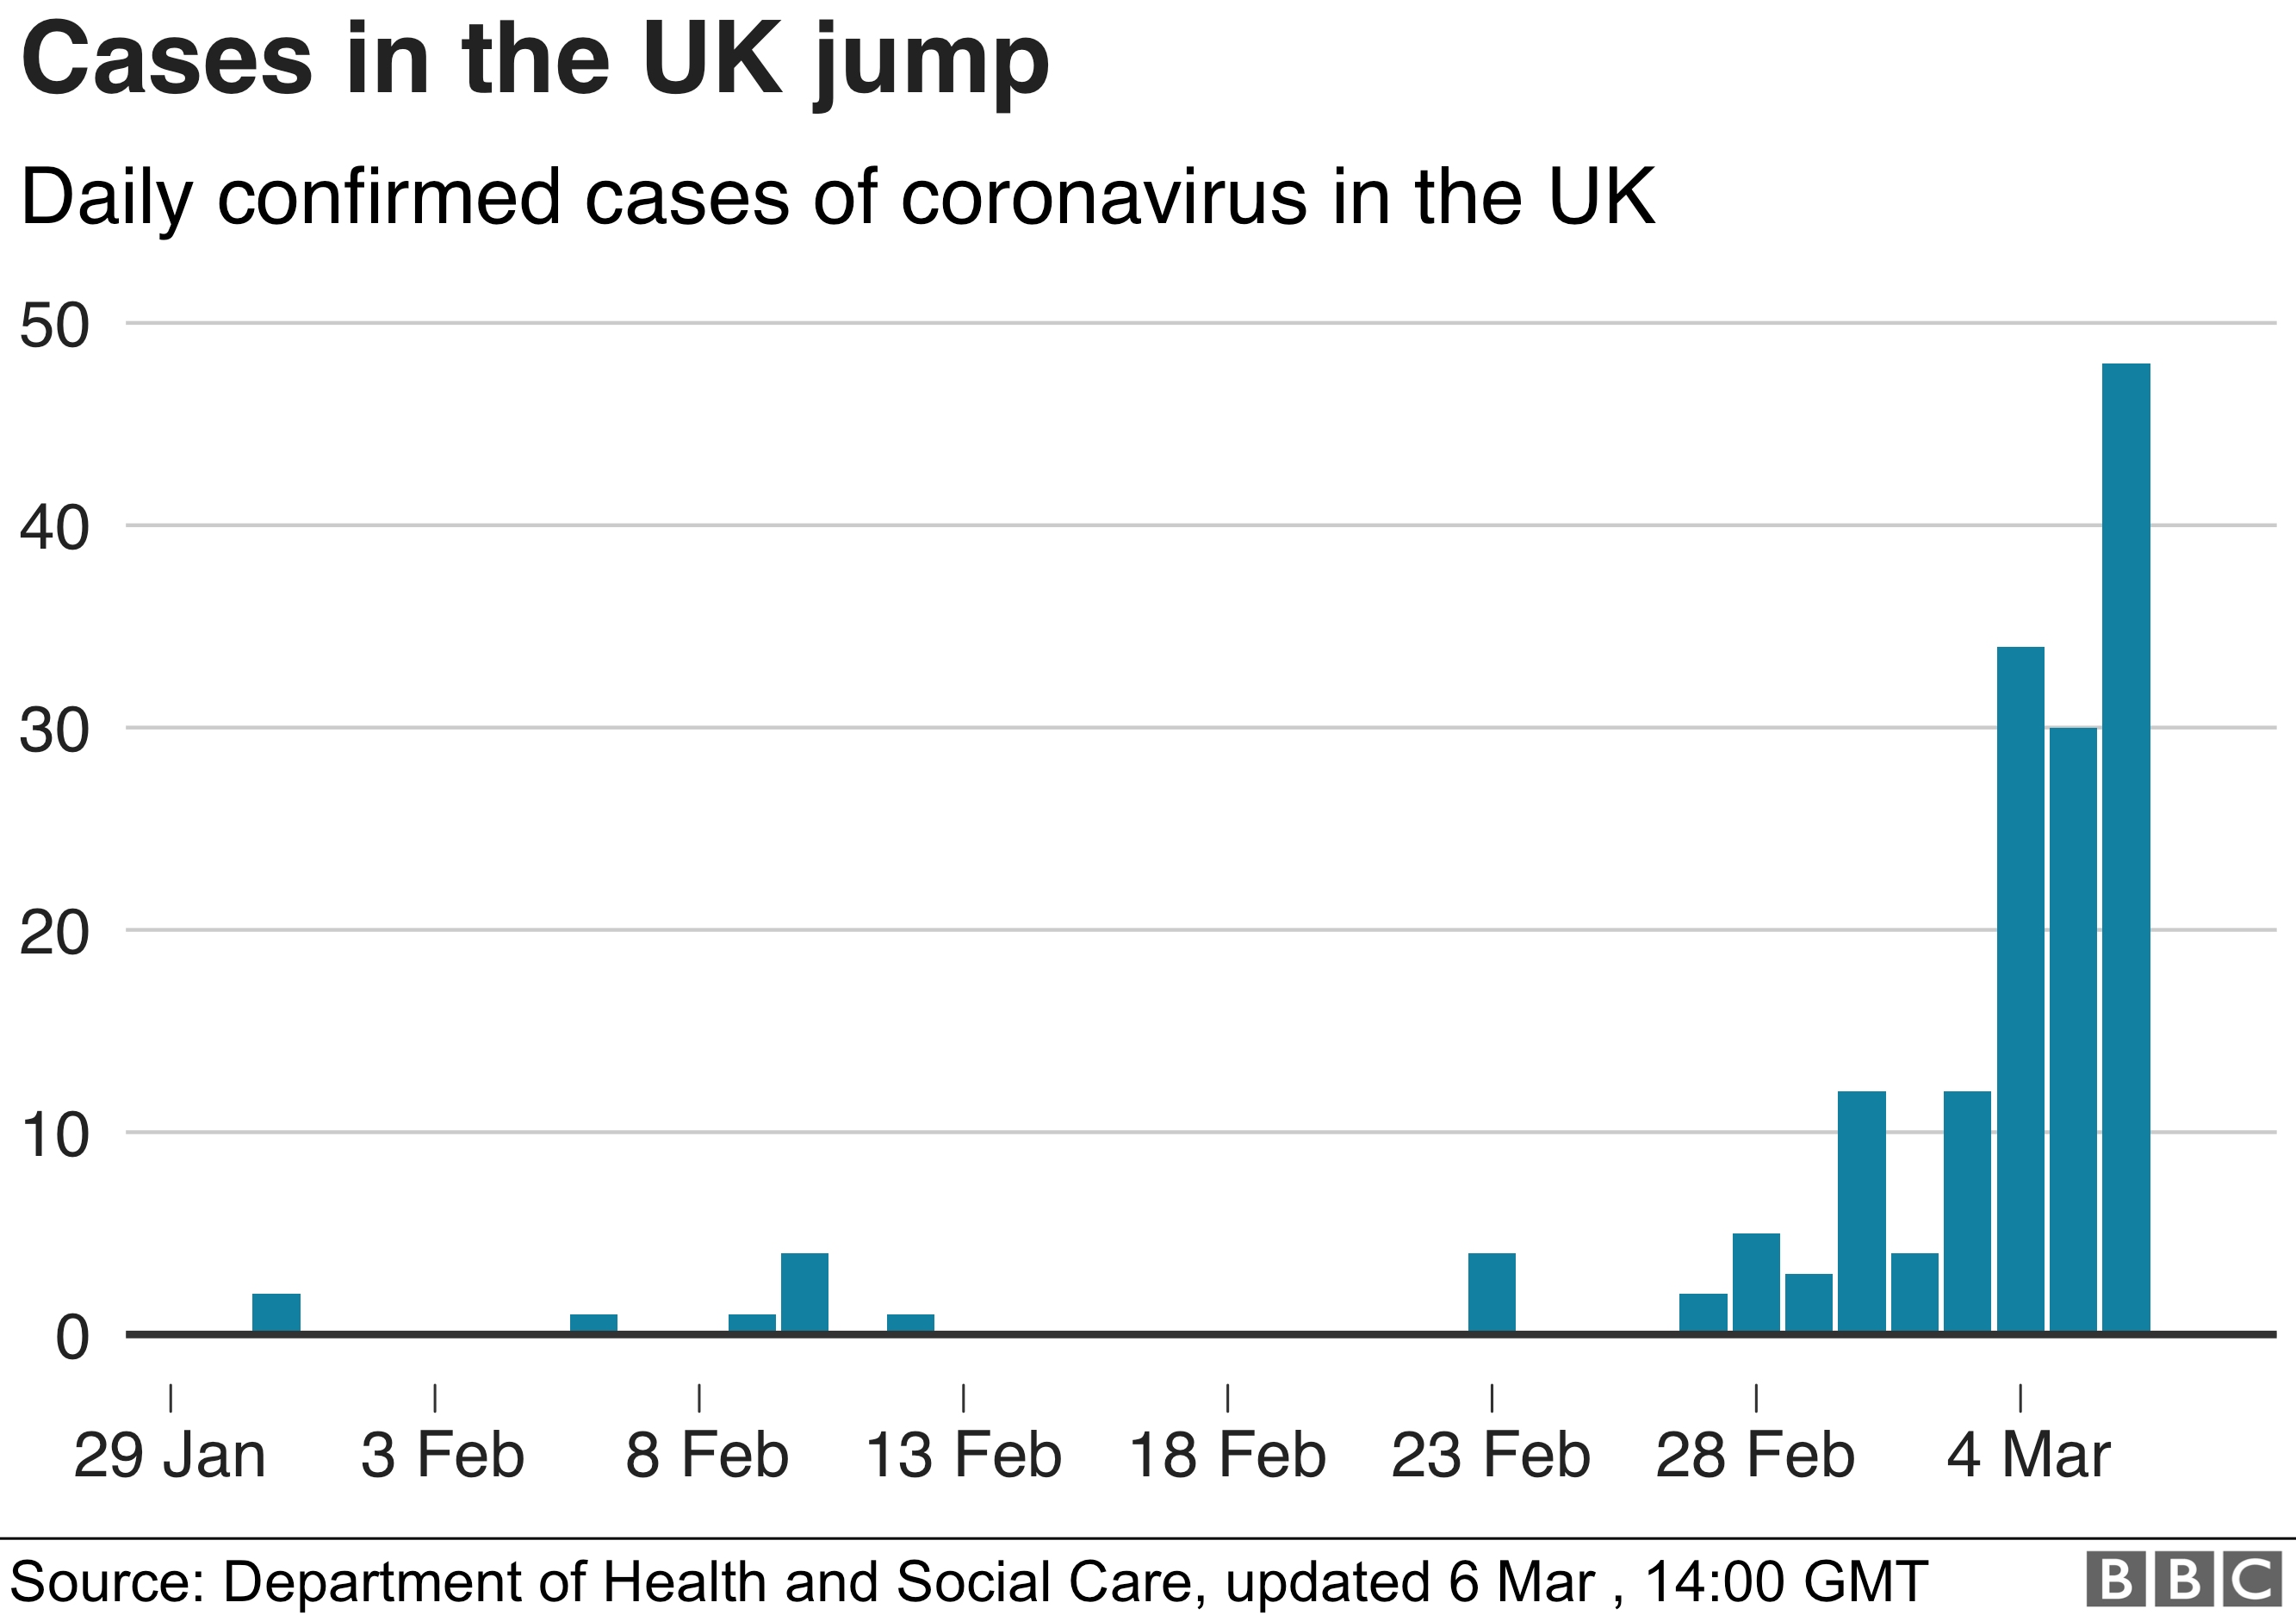 Chart showing daily confirmed coronavirus cases in the UK